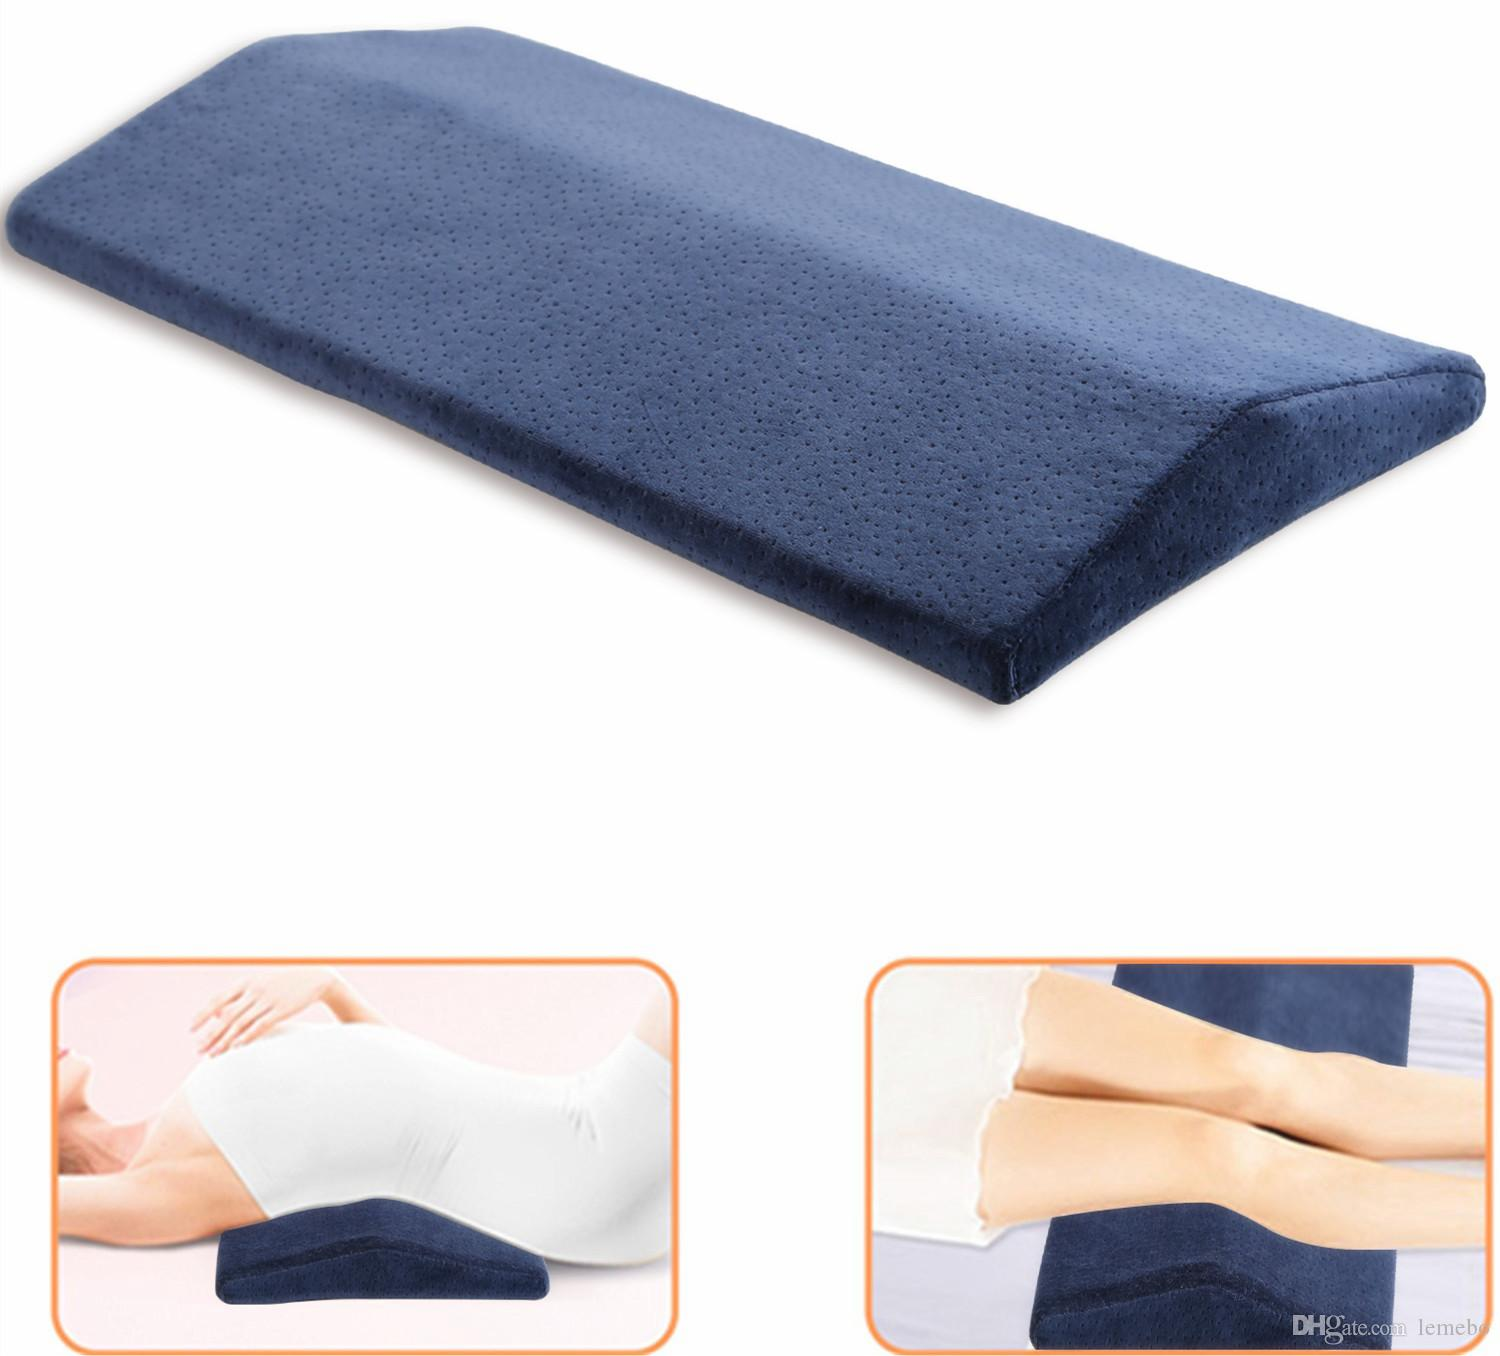 Orthopedic Lumbar Support Pillow For Bed Sleeping Pillow For Lower